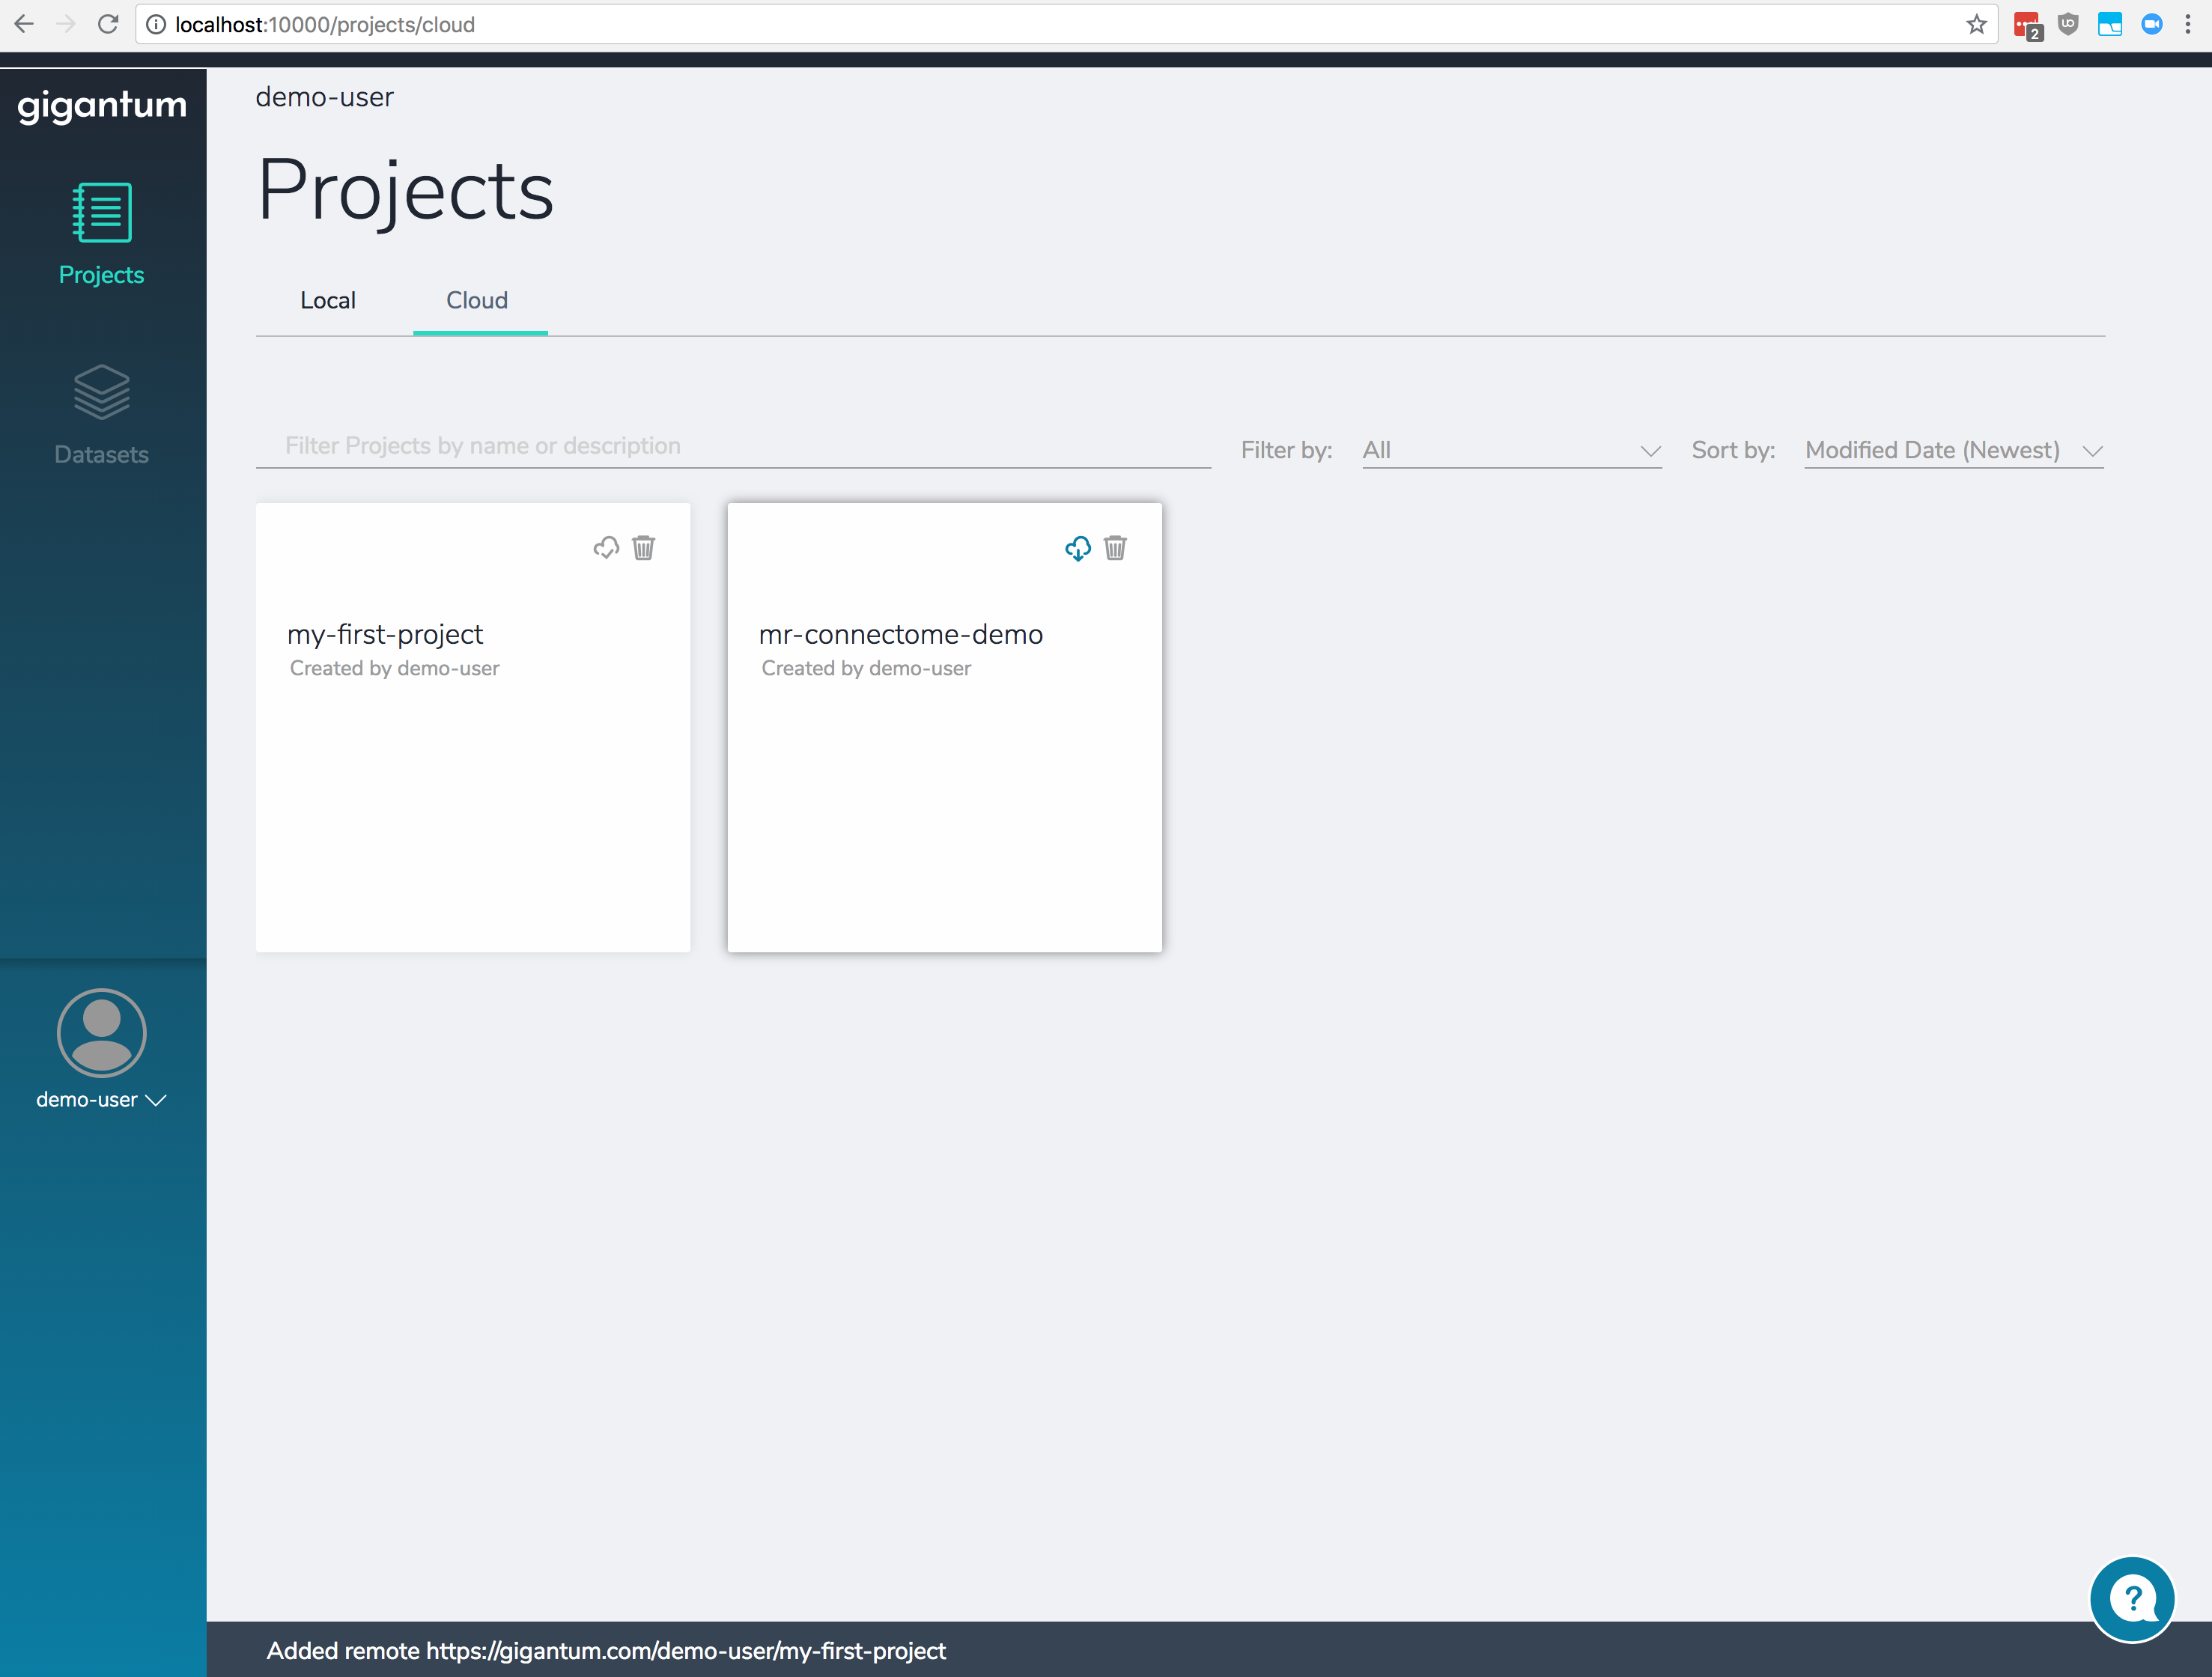 The cloud view page showing Projects that have been shared by other users or stored in the cloud.